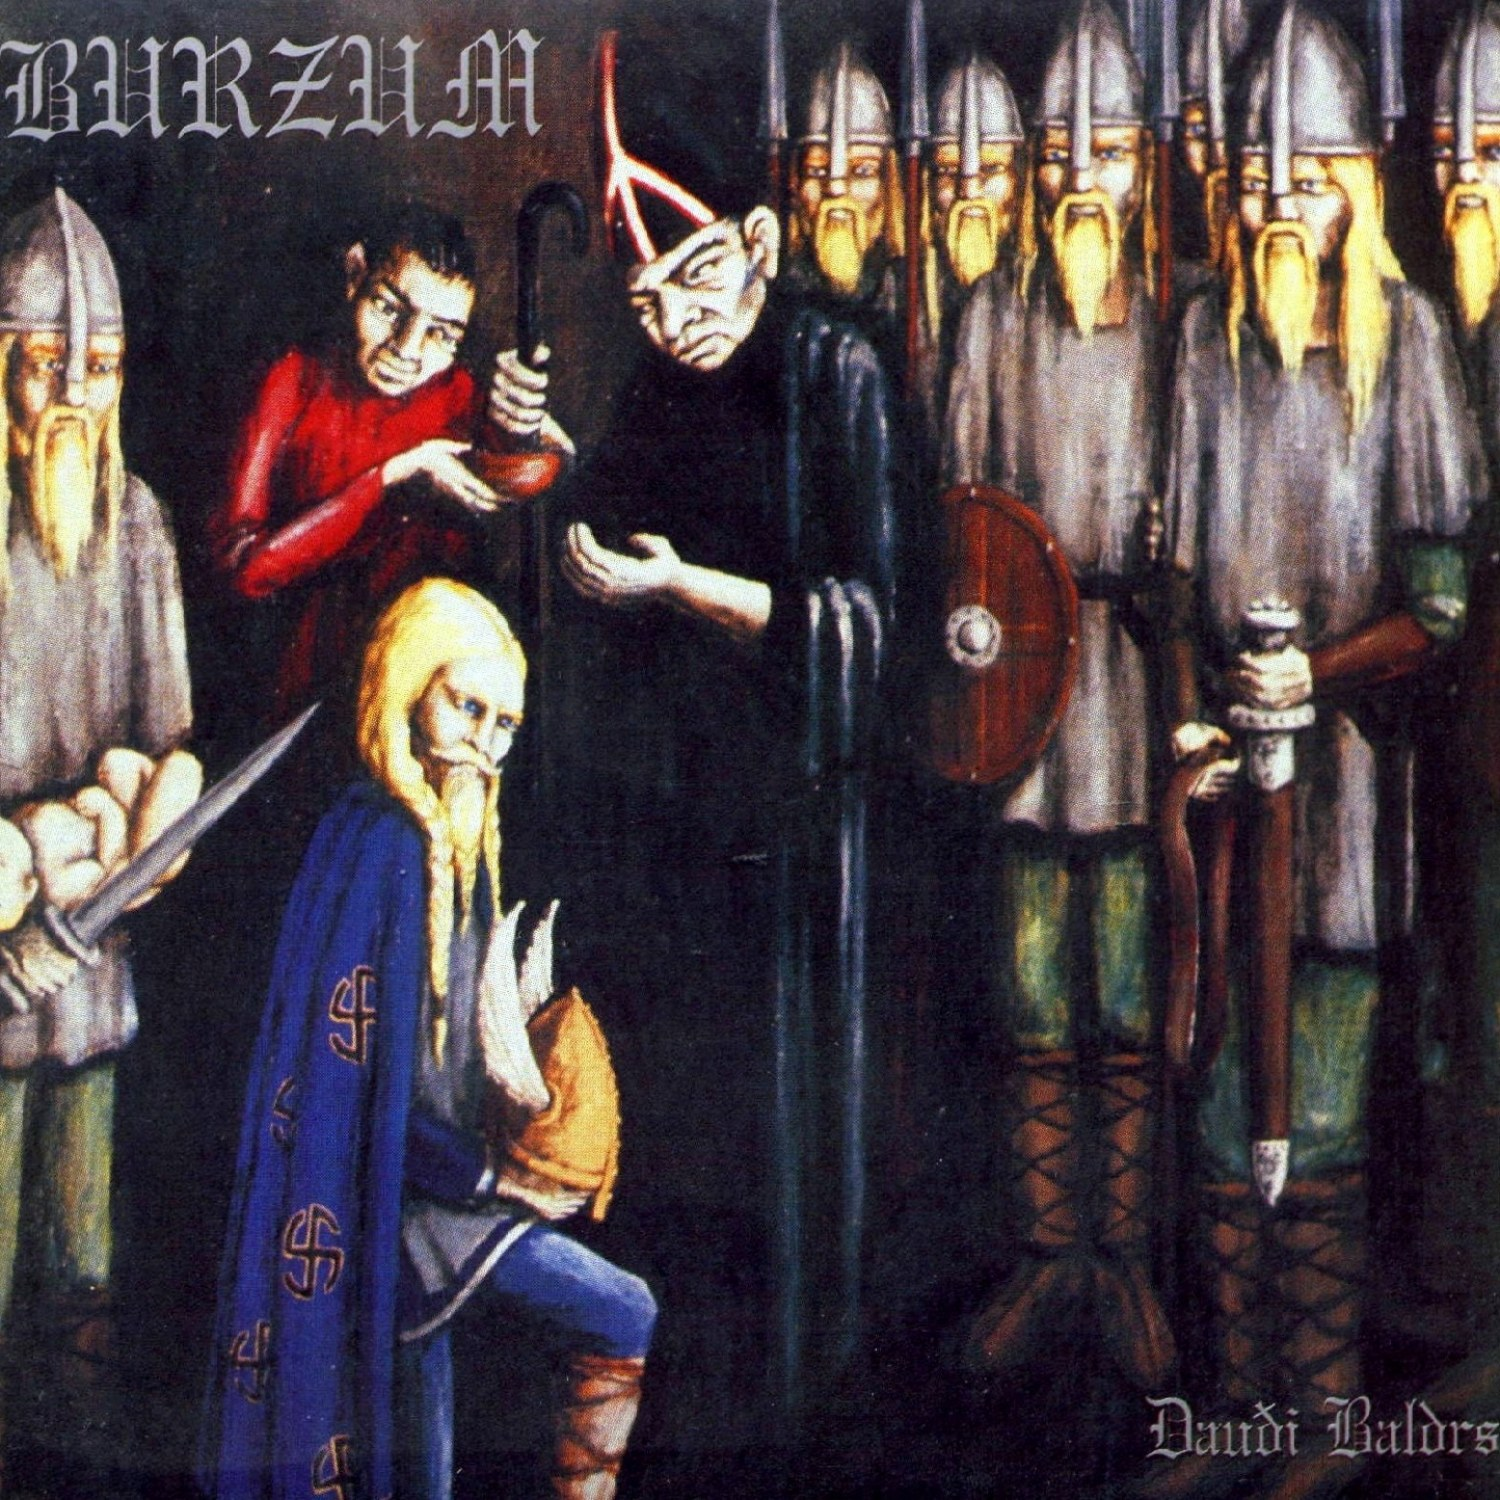 Review for Burzum - Dauði Baldrs